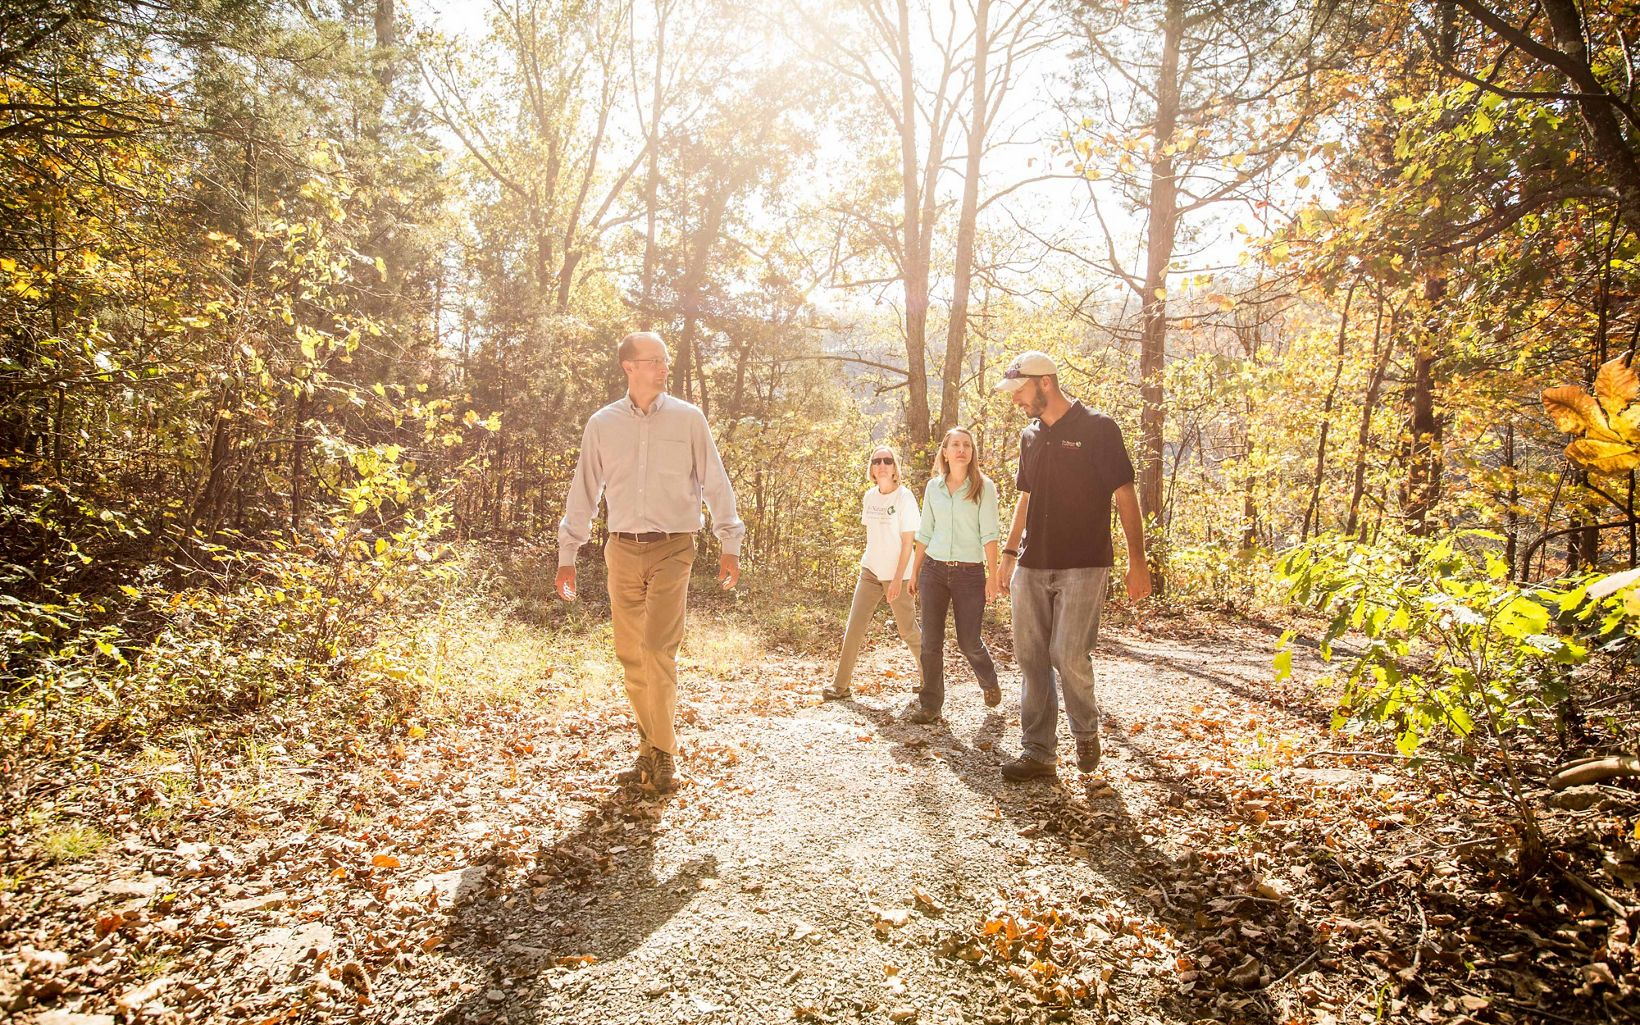 Members of TNC's Kentucky staff take a walk at the Dupree Nature Preserve during autumn.